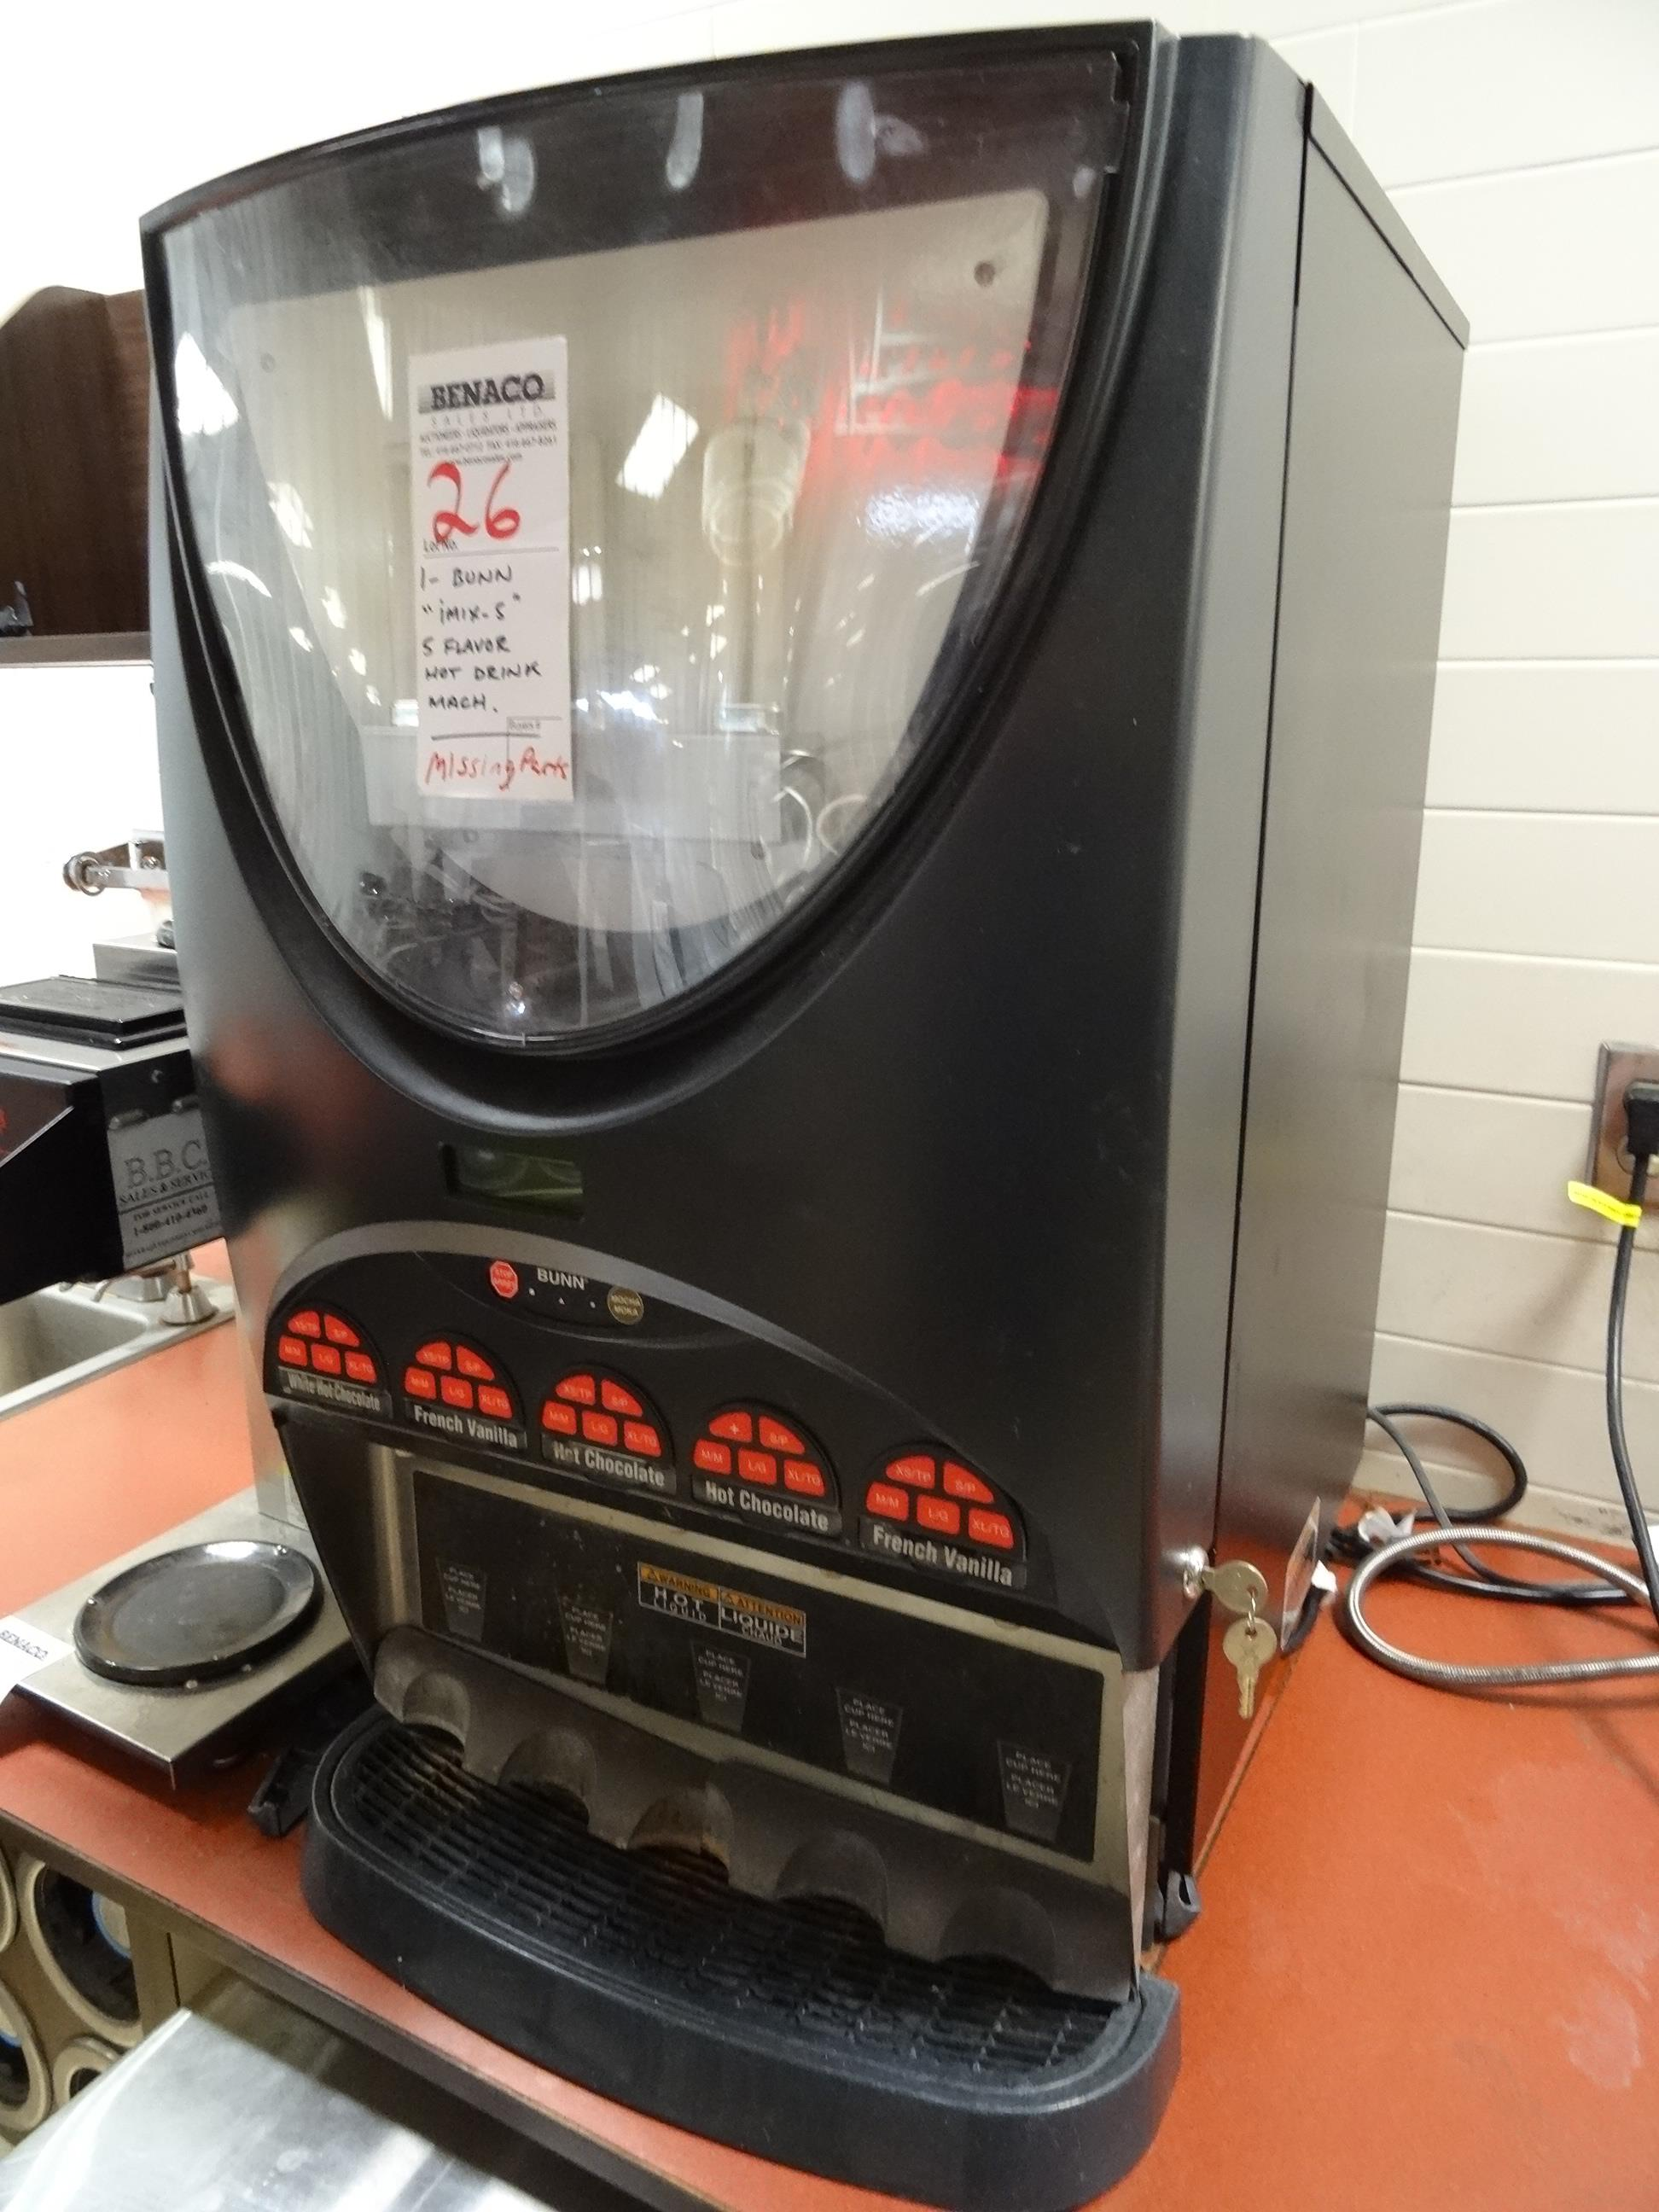 Lot 26 - 1X, BUNN iMIX-5, 5-FLAVOR DRINK MACHINE (MISSING PARTS)